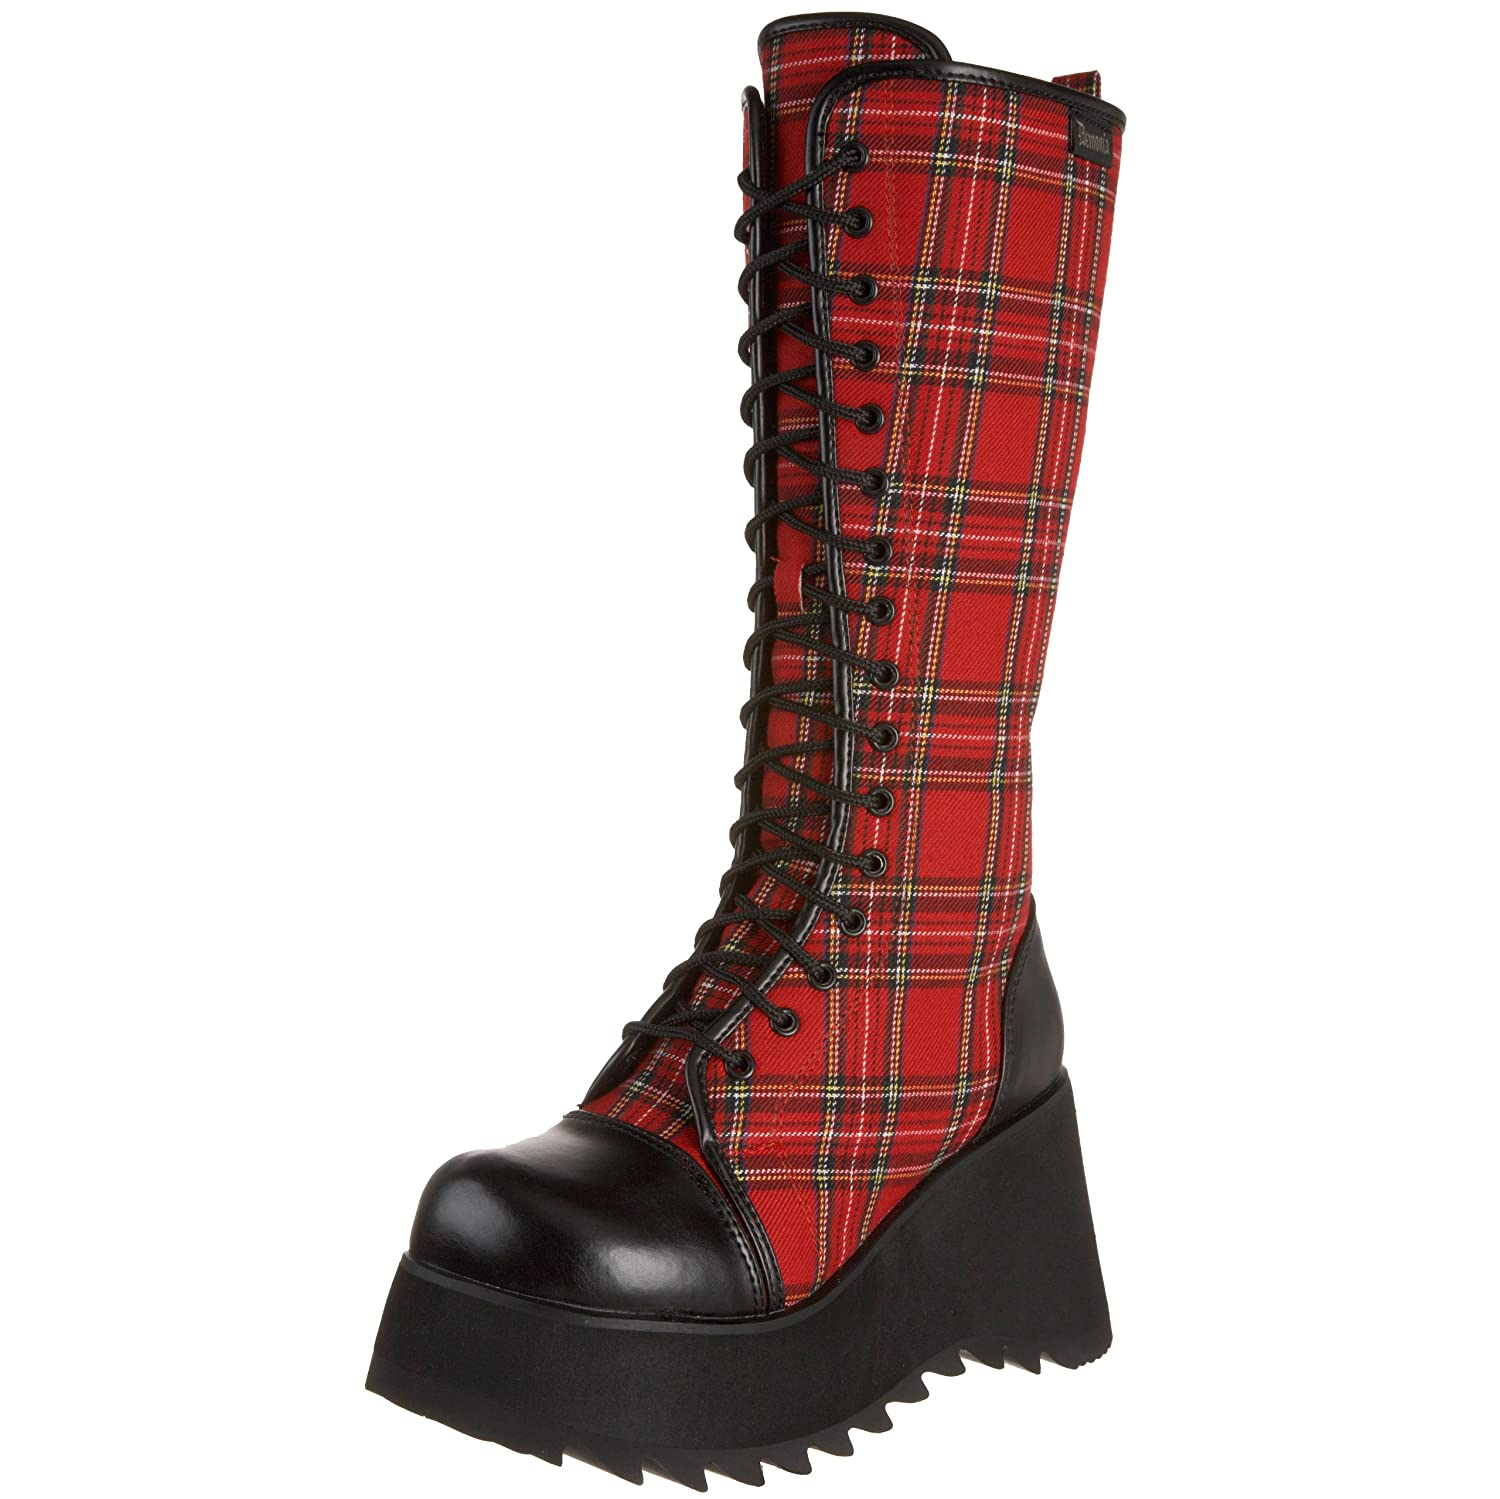 Amazon.com | Demonia By Pleaser Women's Scene-100 Boot, Black Polyurethane/ Plaid, 6 M US | Mid-Calf